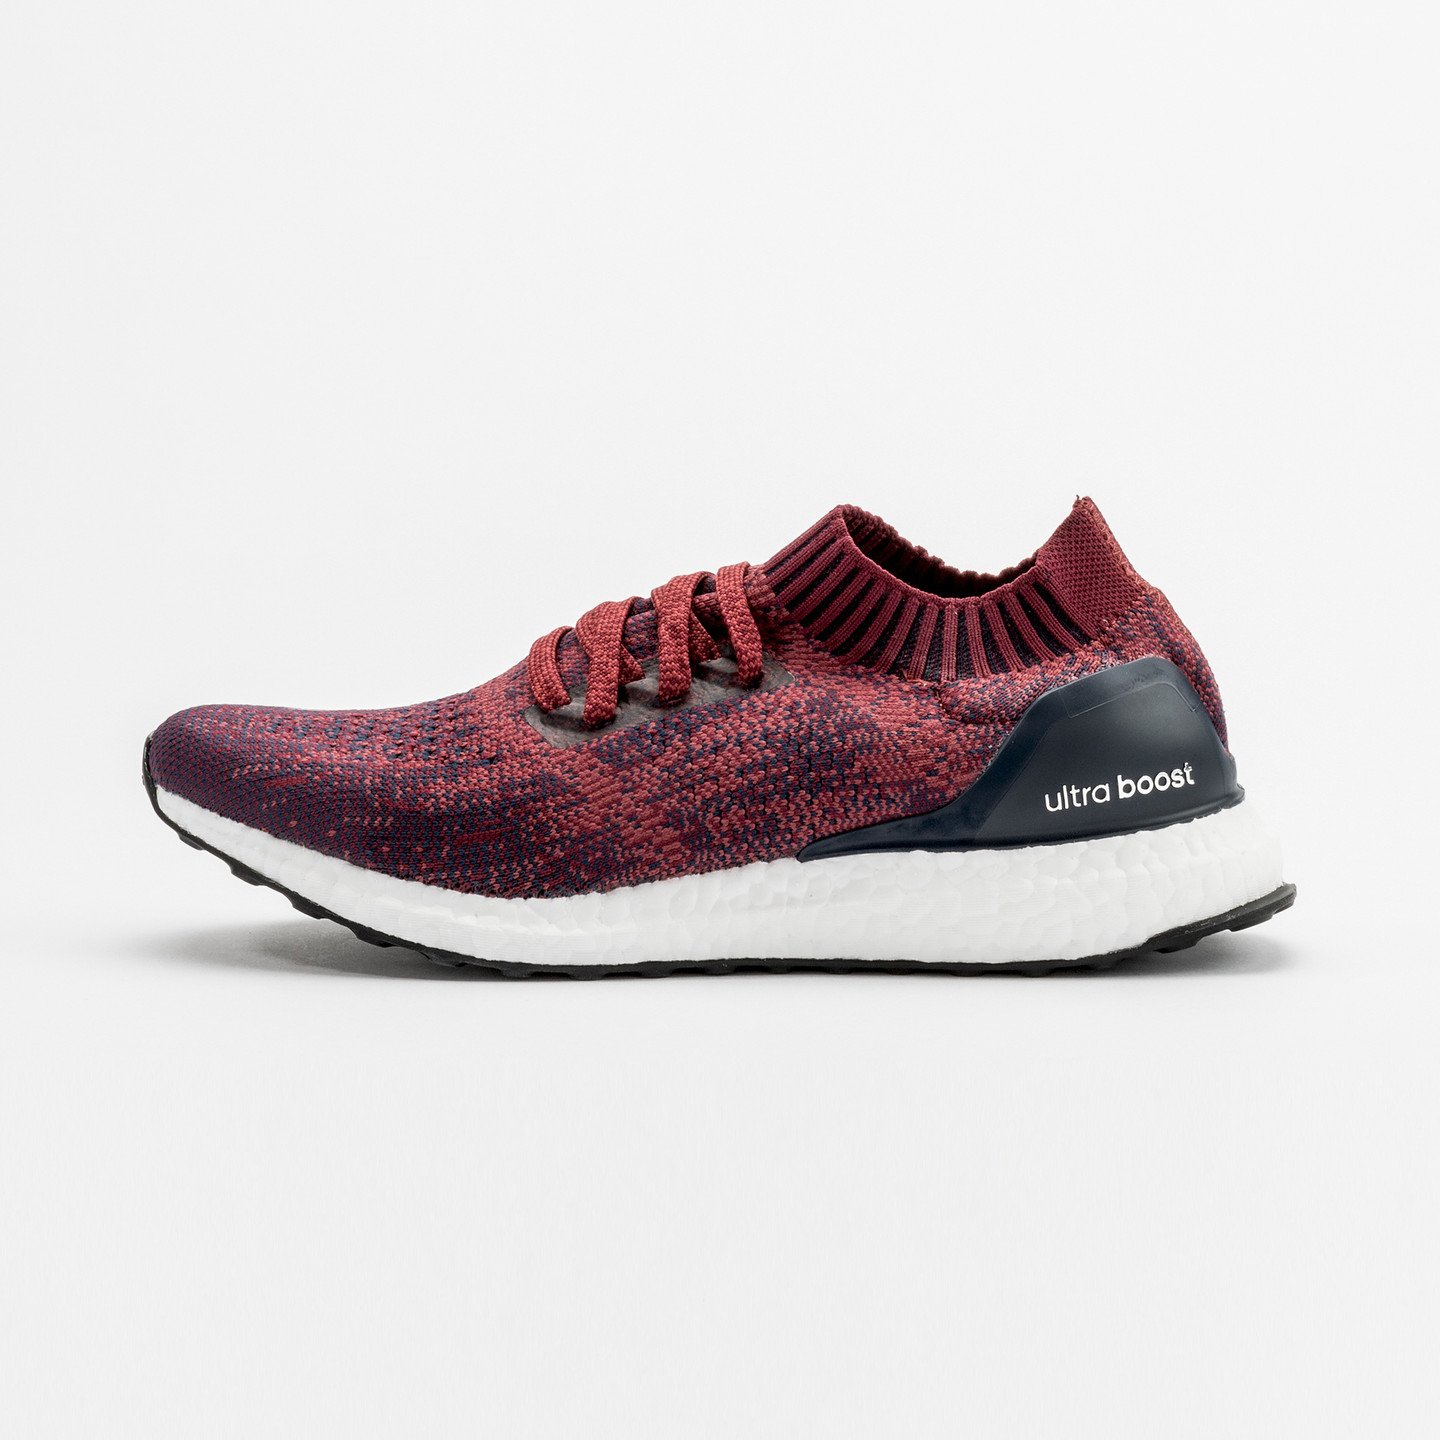 Adidas Ultra Boost Uncaged 'Burgundy' Mystery Red / Coll. Burgundy / Coll. Navy BA9617-43.33